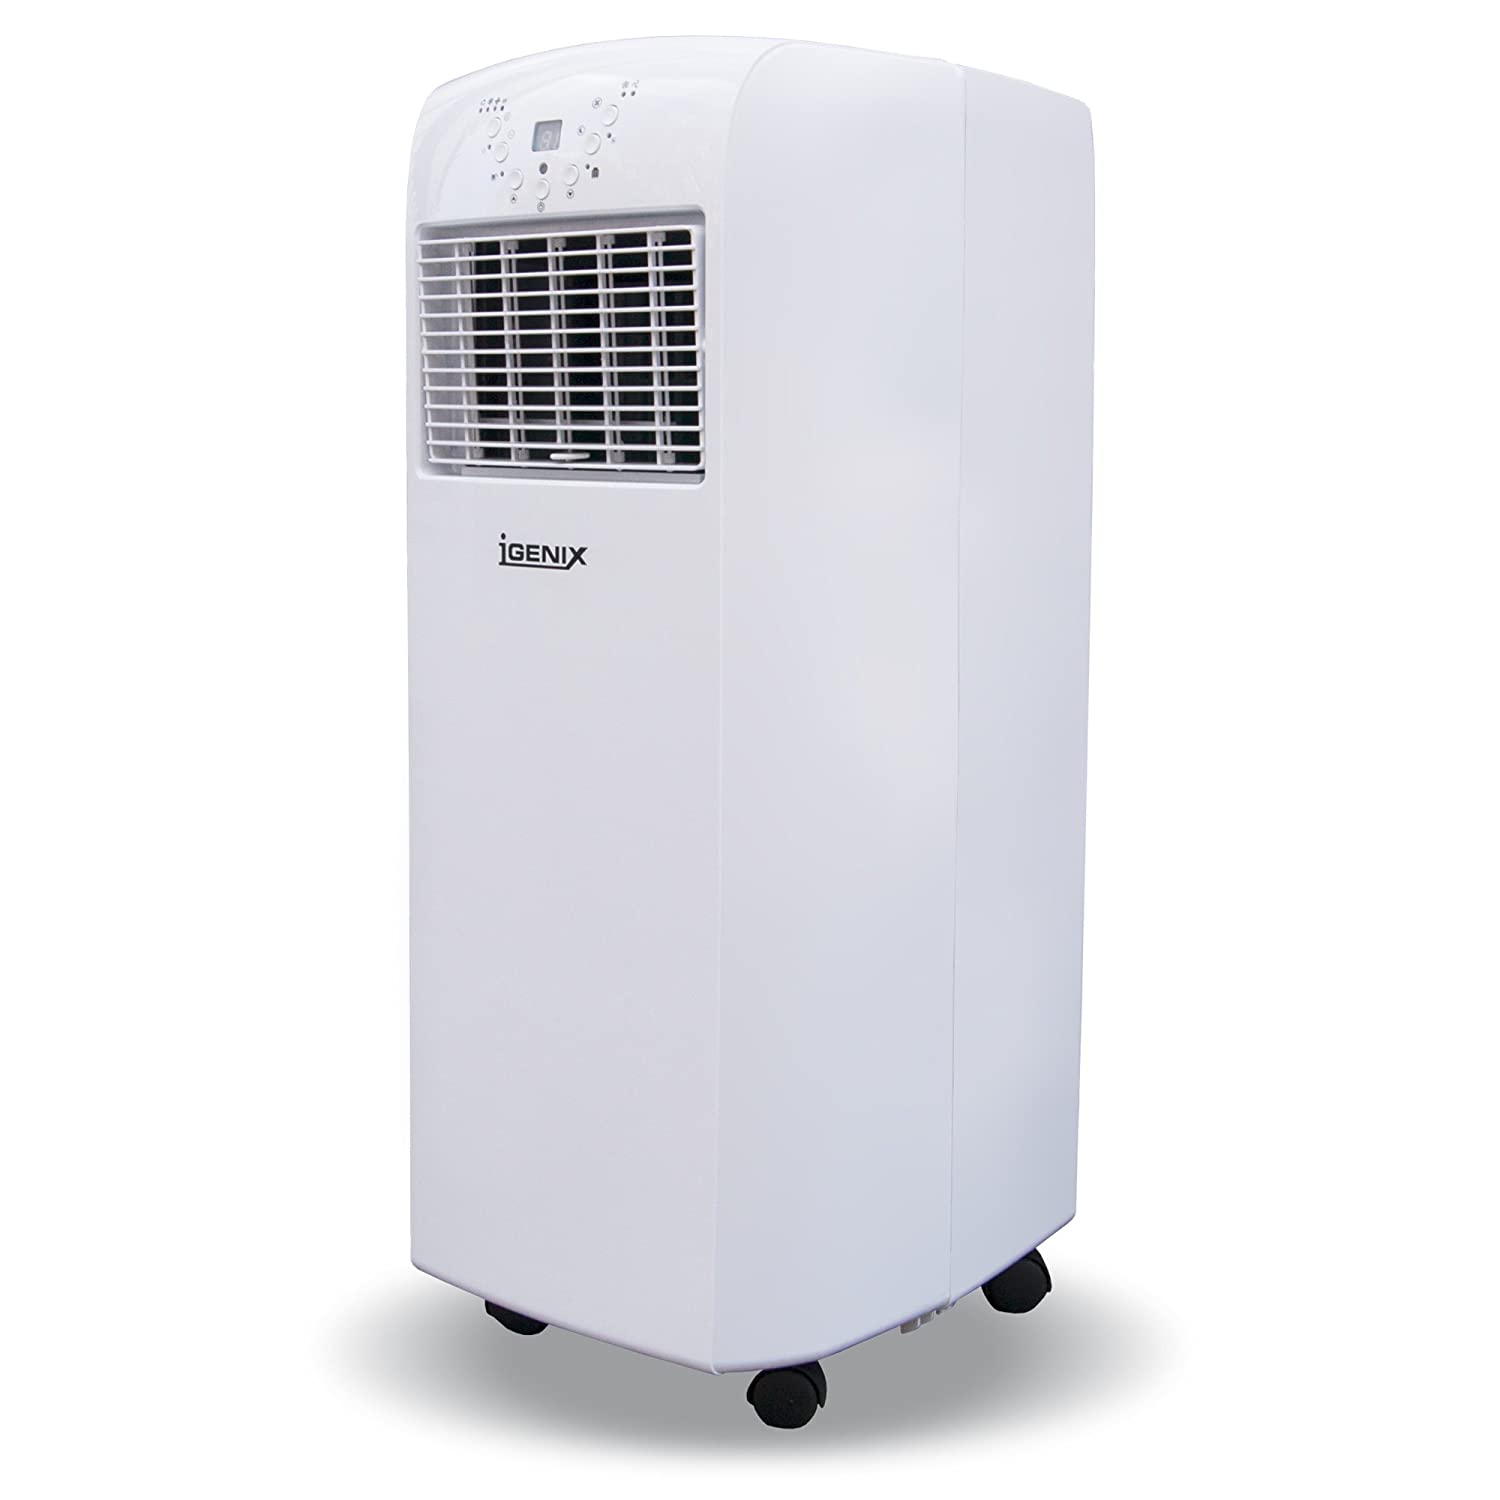 Igenix IG9902 3 In 1 Portable Air Conditioner With Heating Function, 9000  BTU, 1100 W   White: Amazon.co.uk: Kitchen U0026 Home